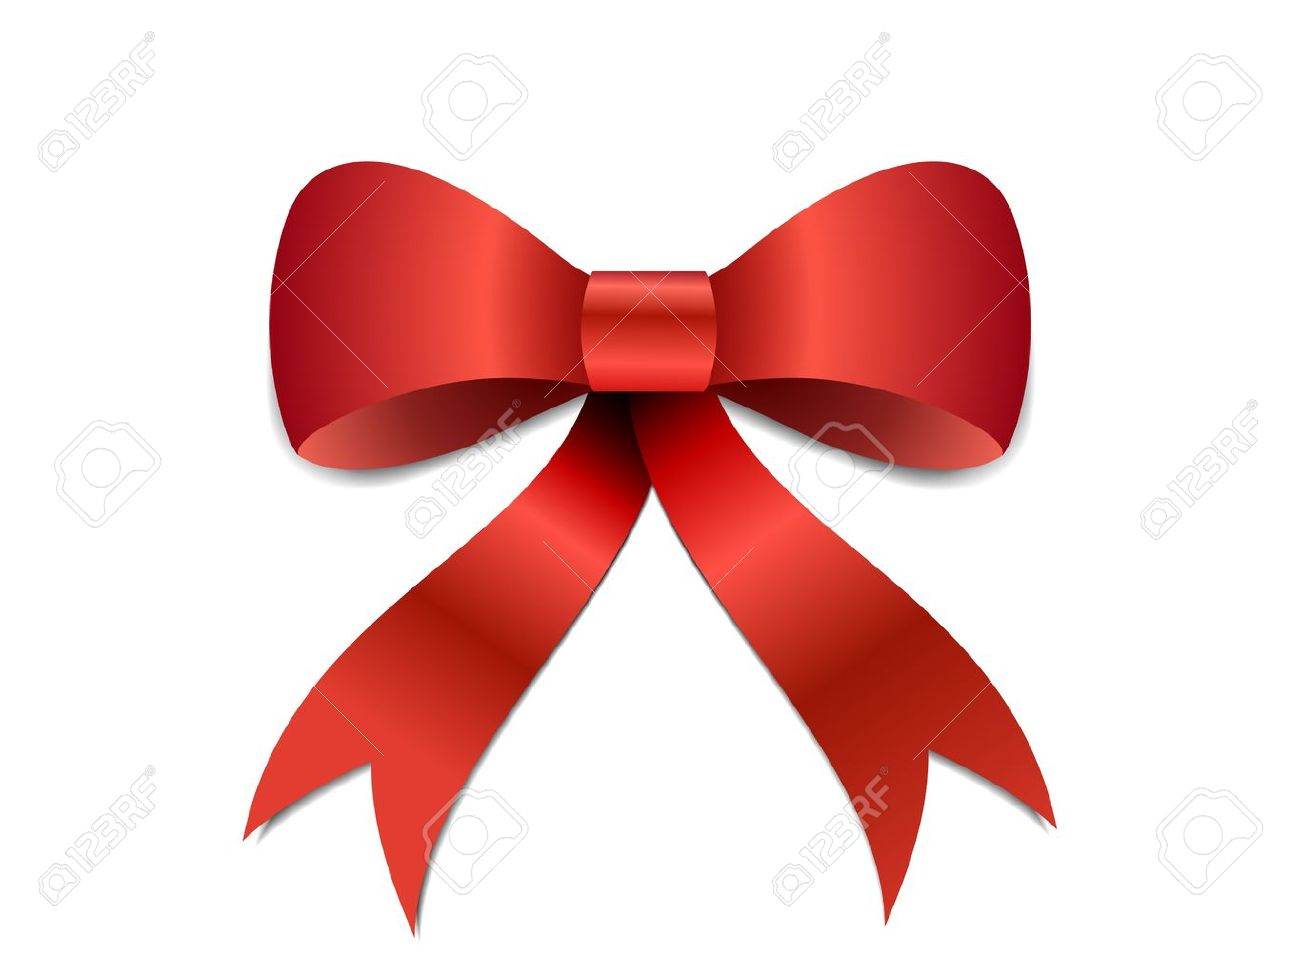 Big Red Christmas Bow Illustration With Gradients And Opacity ...